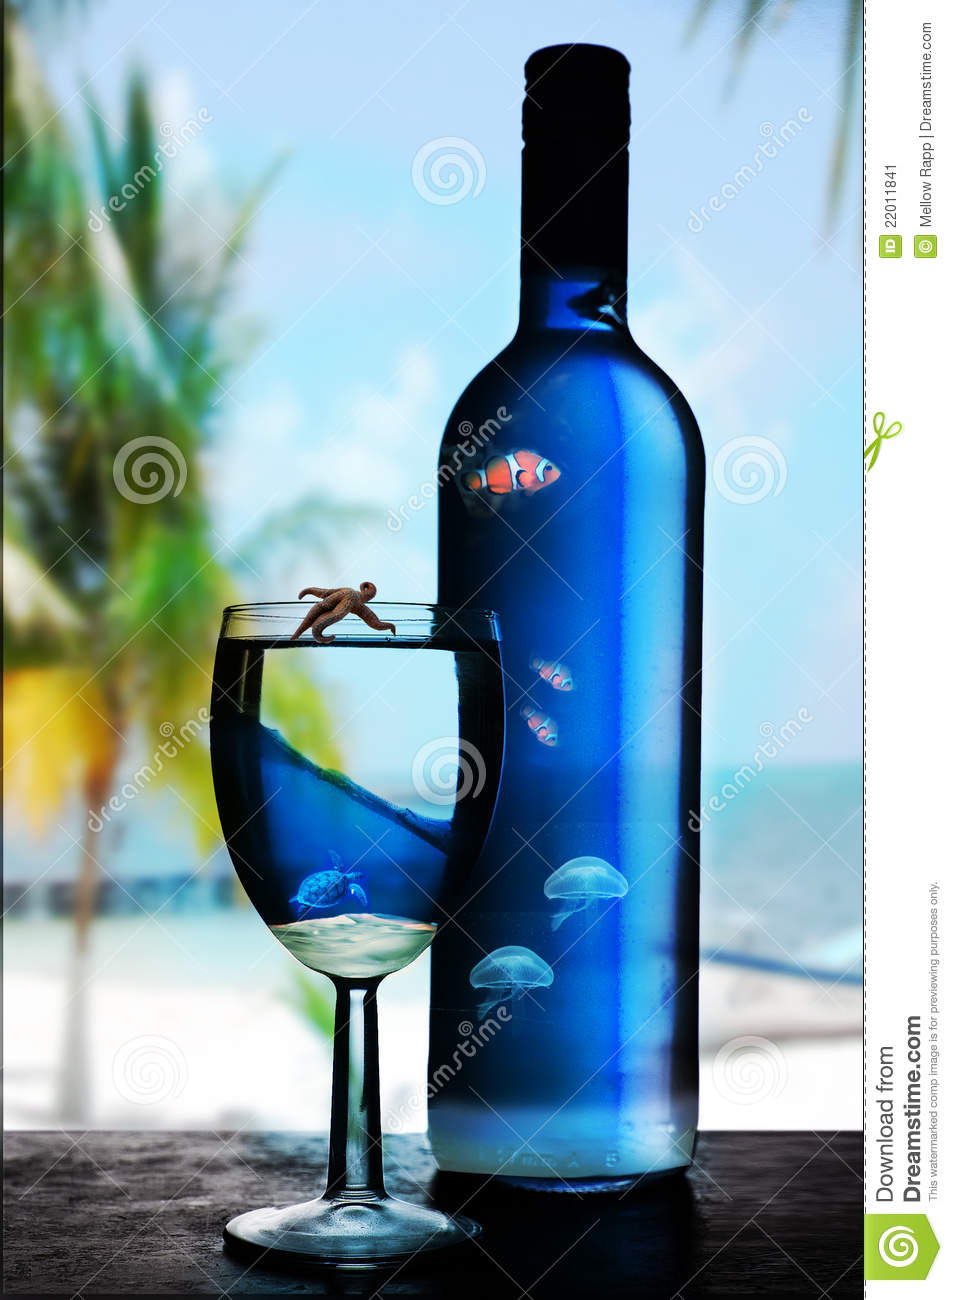 I Love You Animation Wallpaper Blue Glass And Bottle Of Wine Stock Image Image 22011841